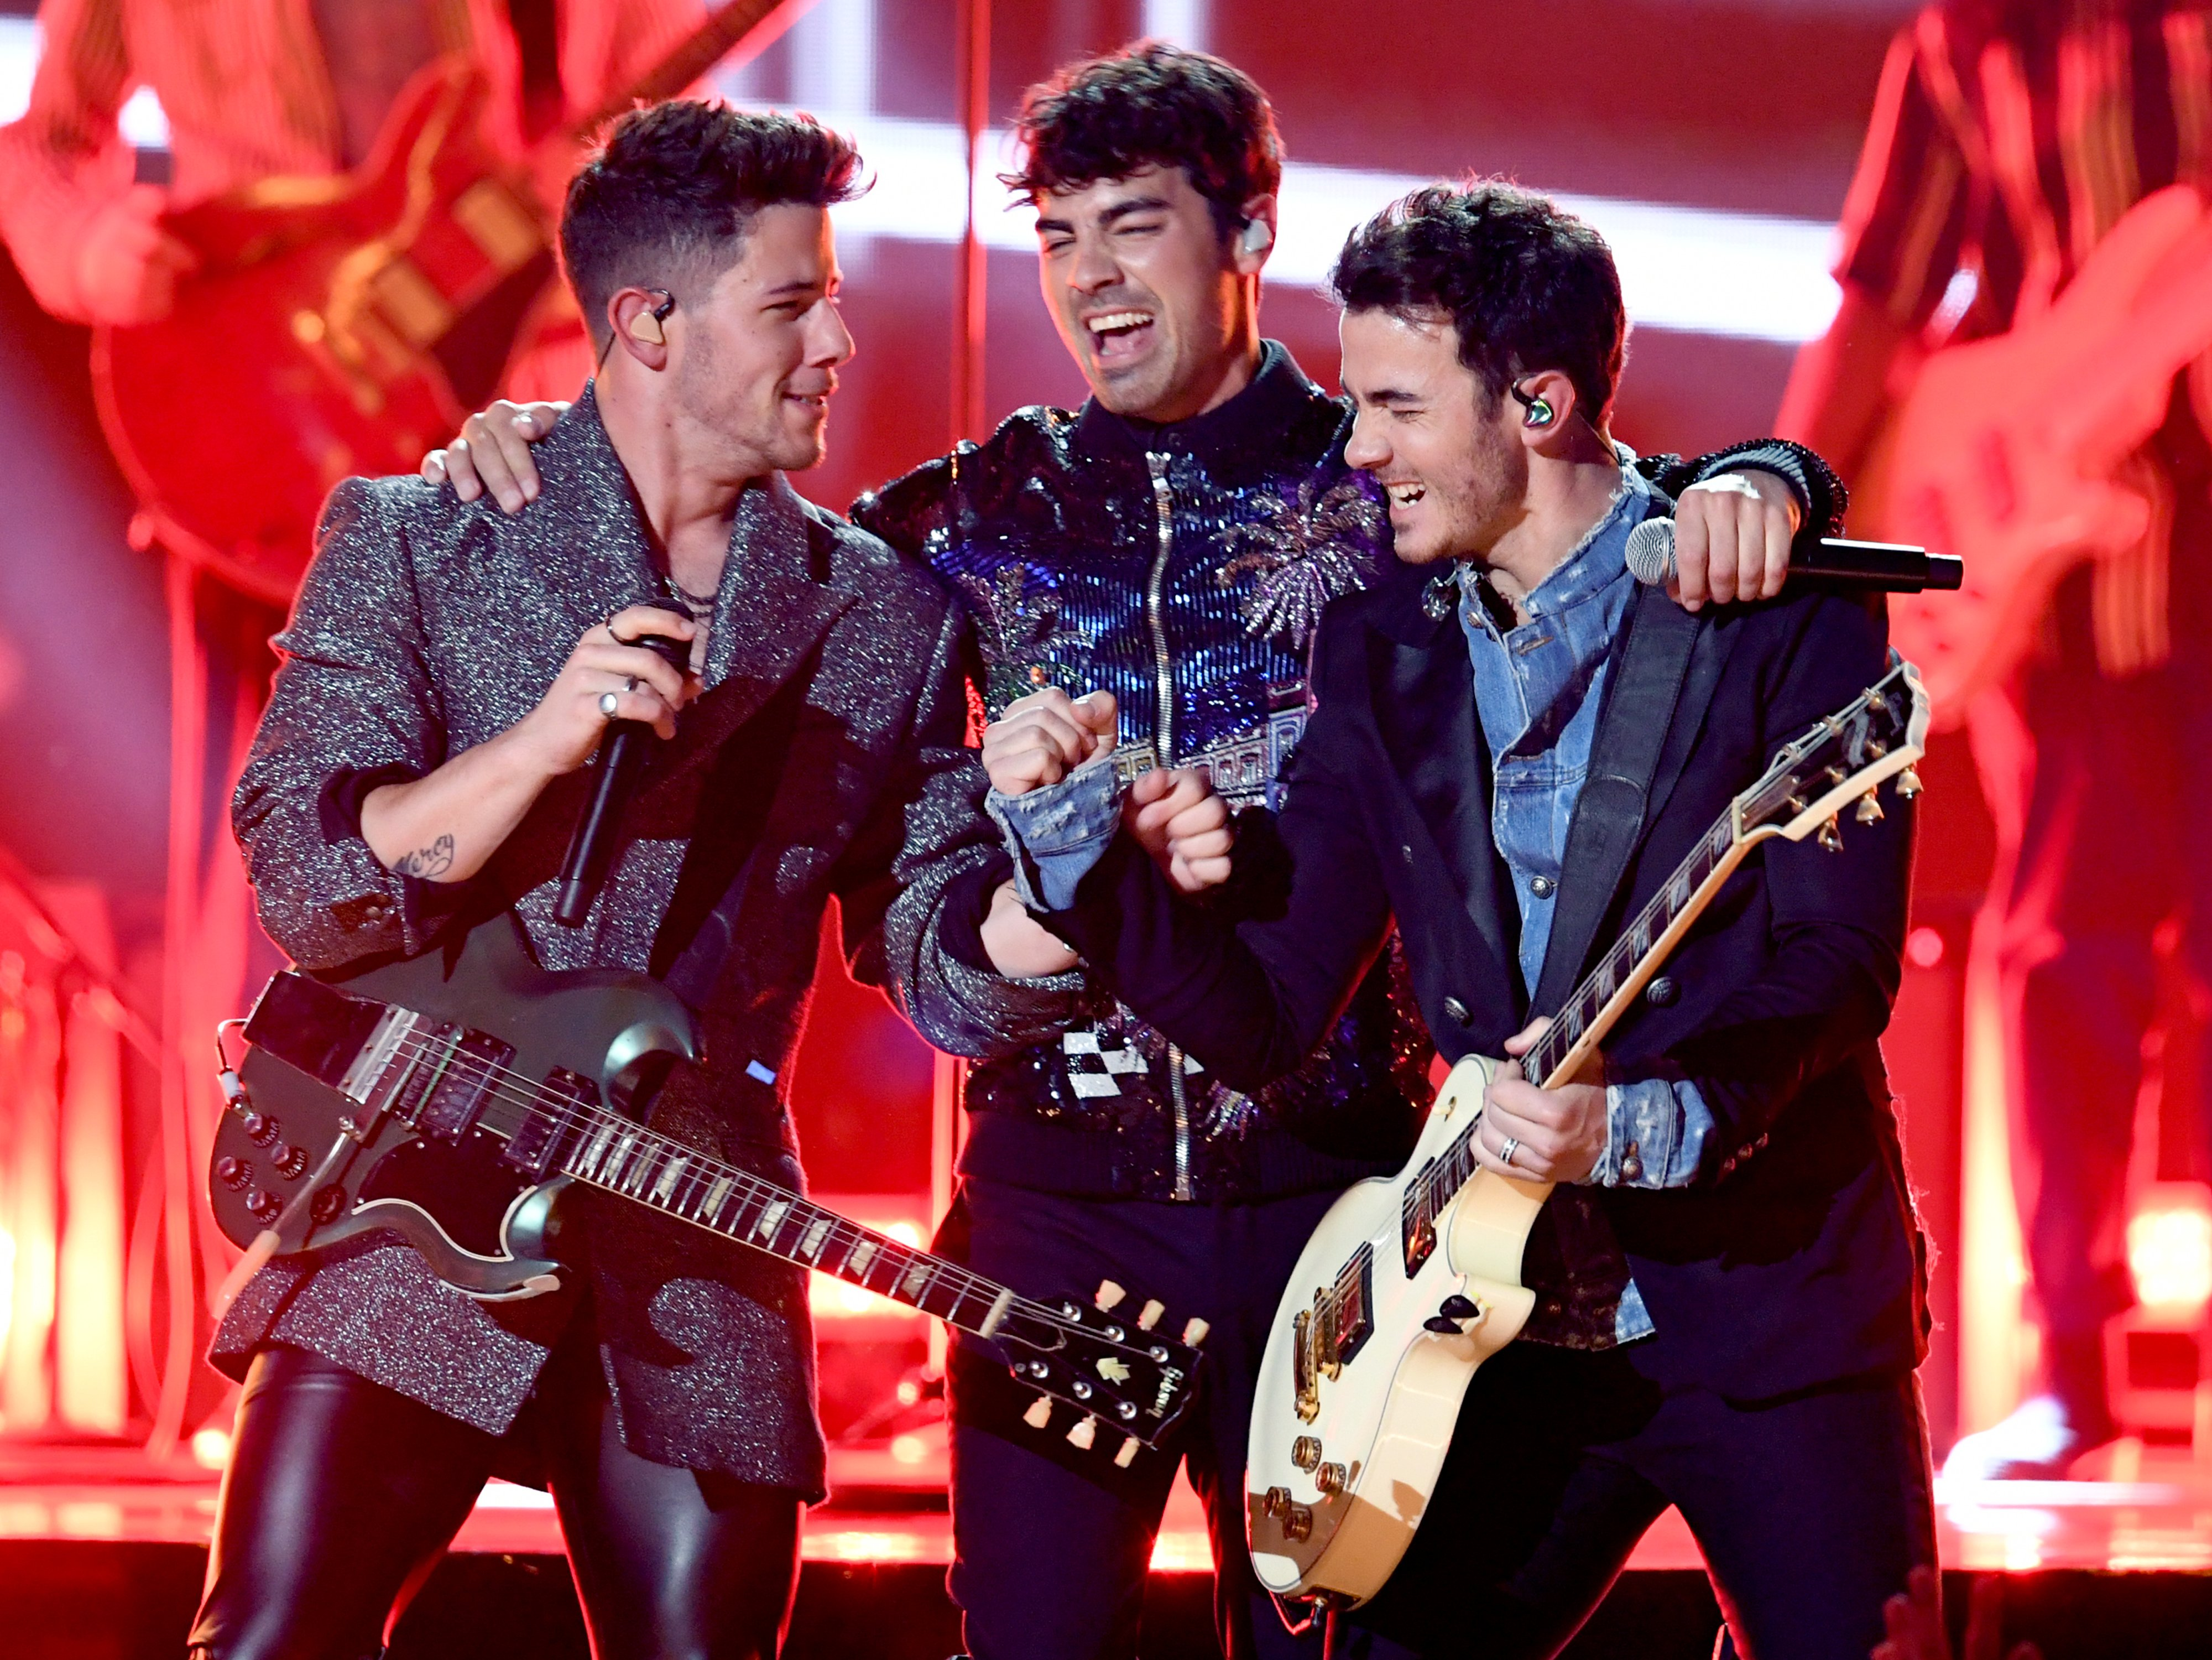 Nick Jonas, Joe Jonas, and Kevin Jonas of Jonas Brothers perform onstage during the 2019 Billboard Music Awards at MGM Grand Garden Arena on May 01, 2019 in Las Vegas, Nevada | Photo: Getty Images